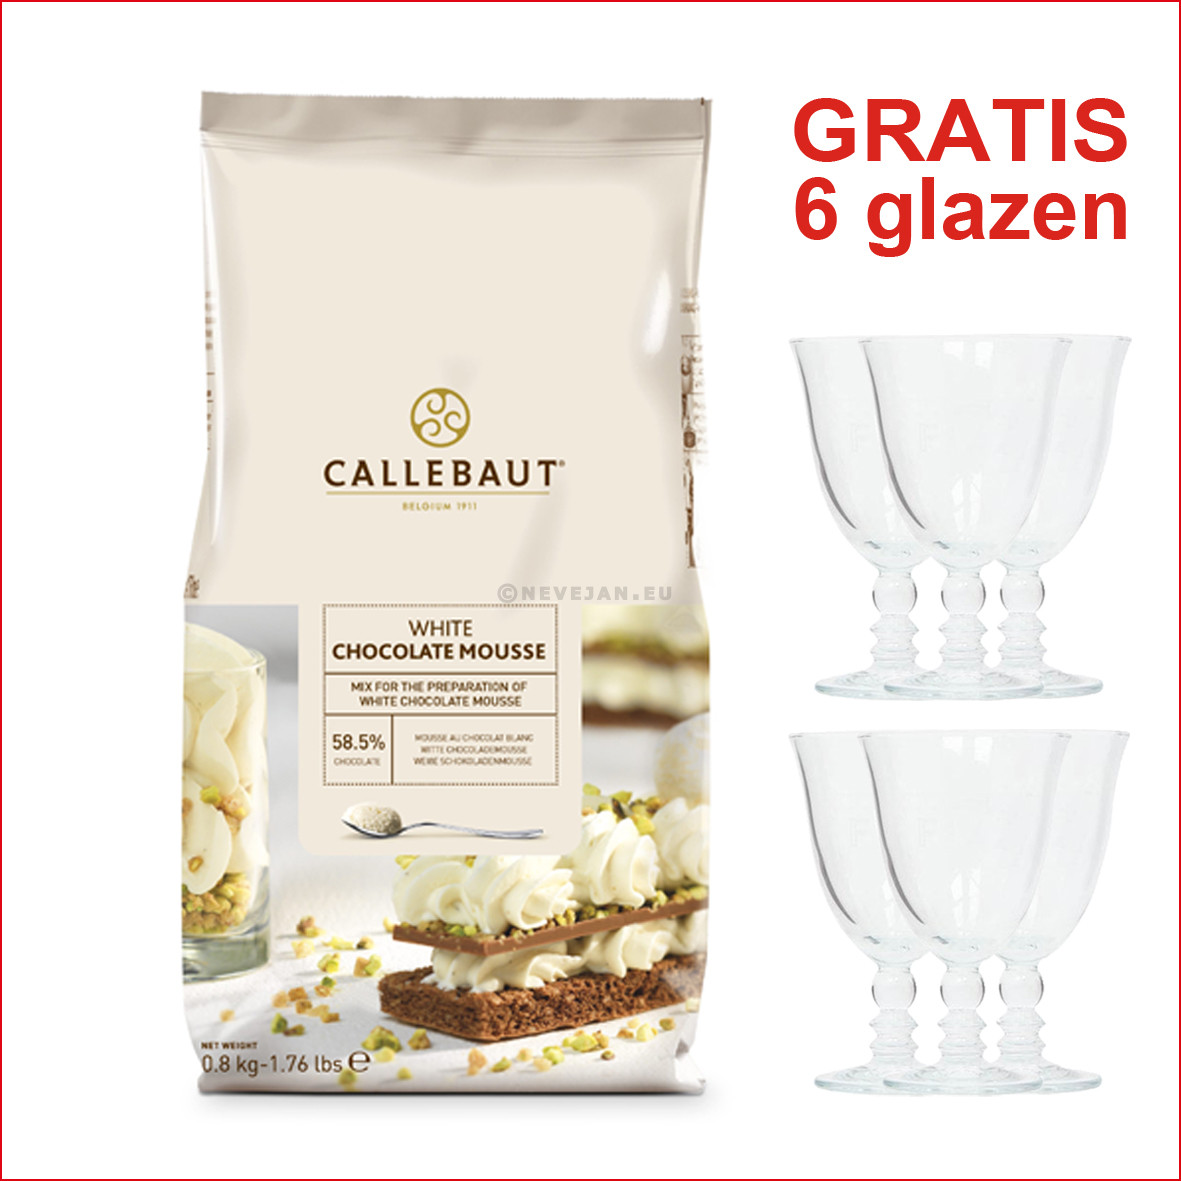 Callebaut mix for white chocolate mousse 800gr (Chocolade)